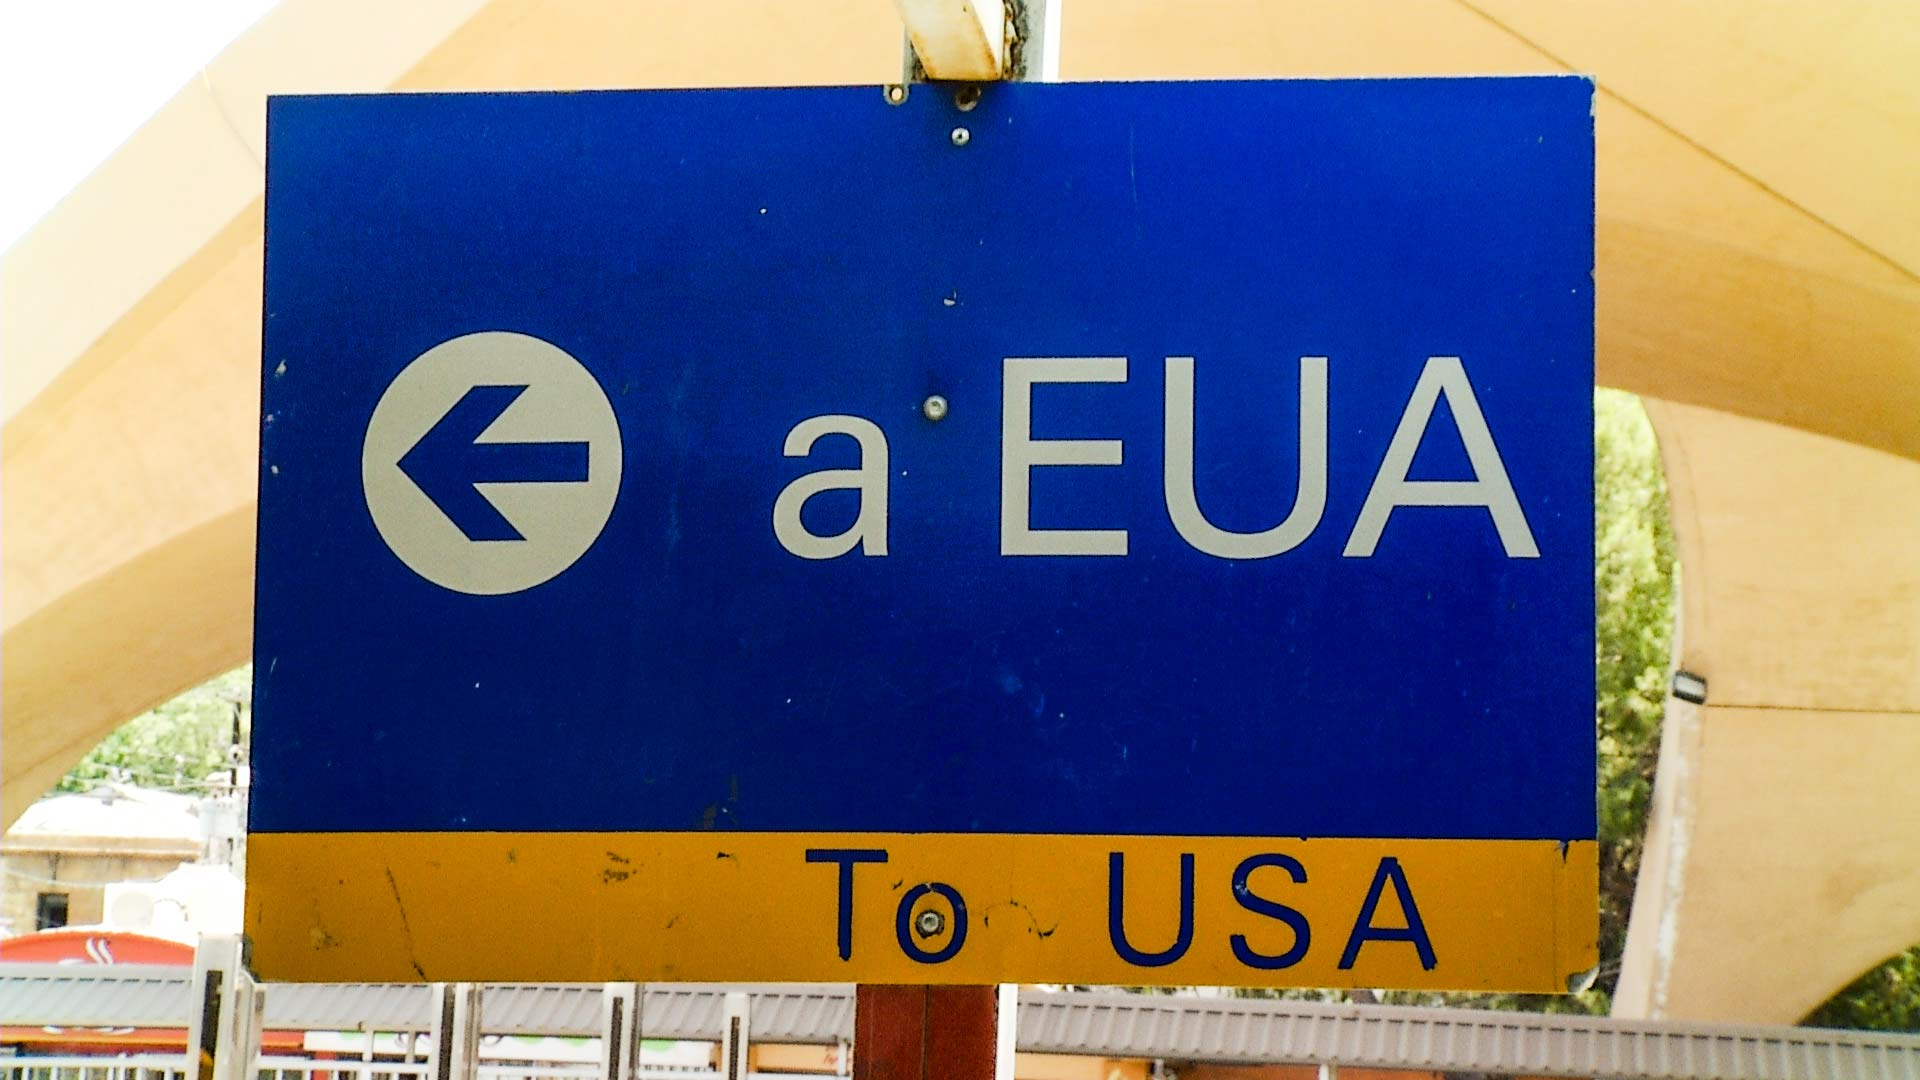 A sign pointing in the direction of the U.S. at a port of entry Nogales, Mexico.